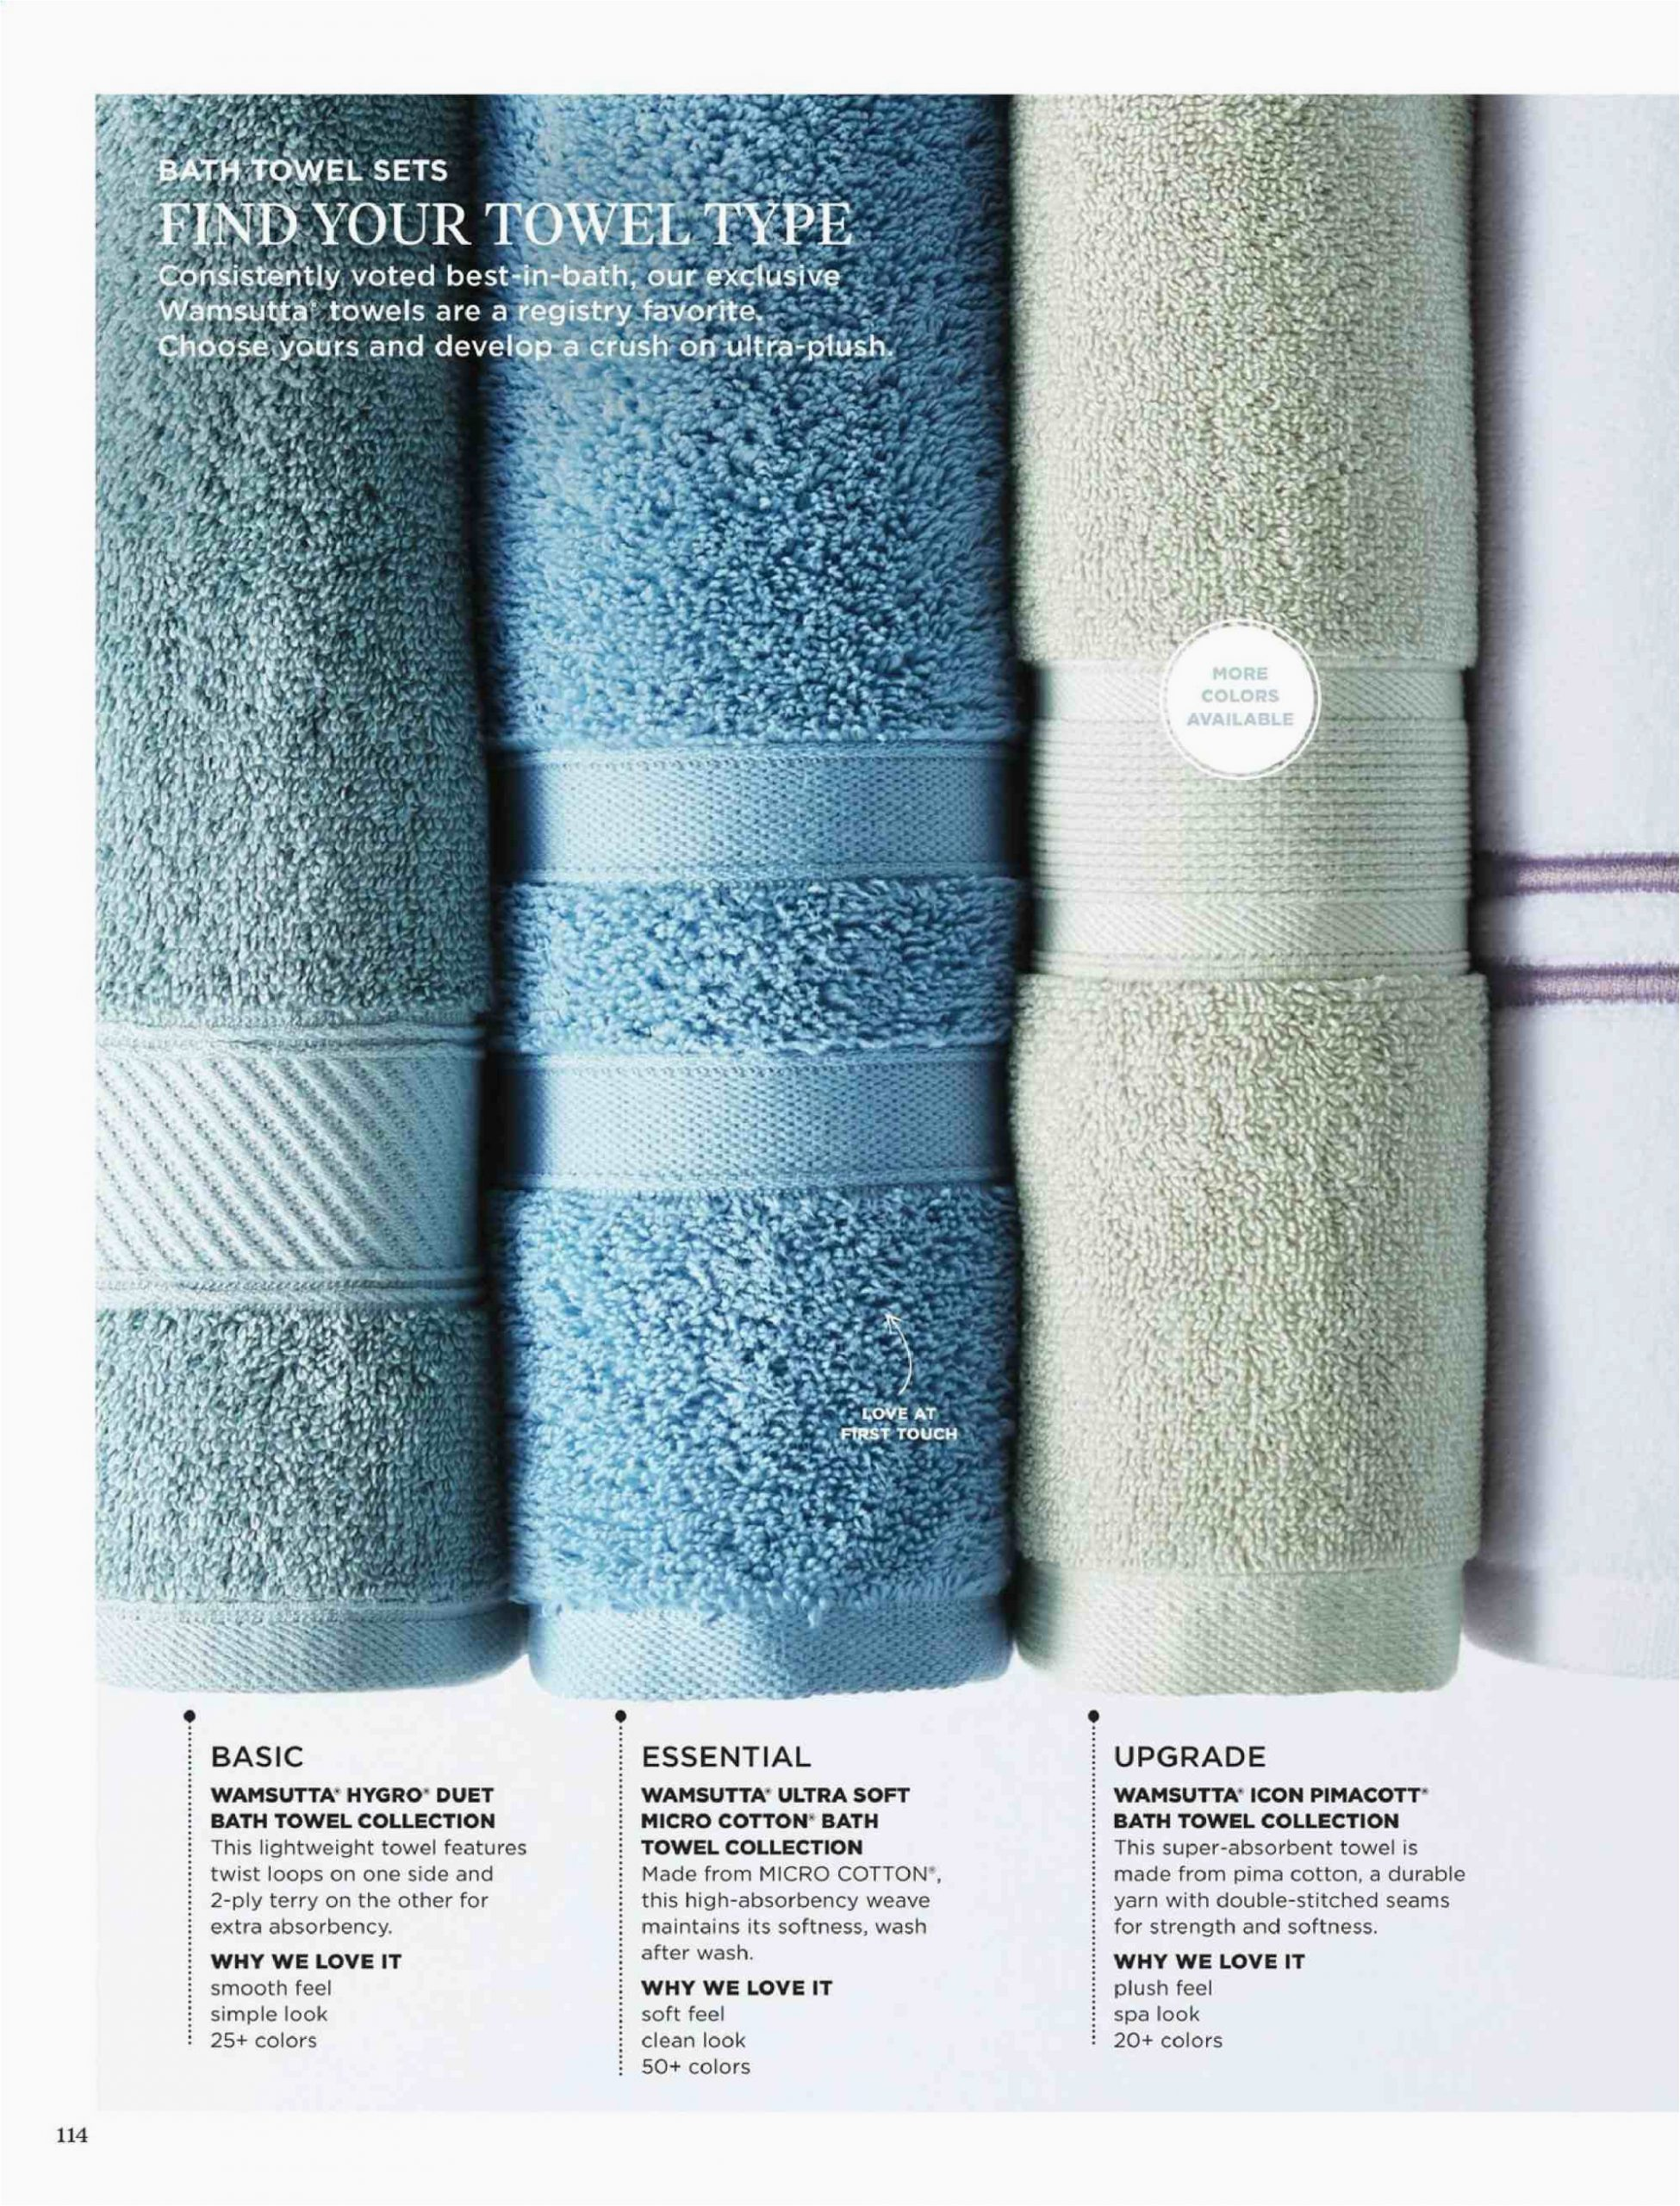 Wamsutta Perfect soft Micro Cotton Bath Rug Bed Bath & Beyond Flyer 12 17 2019 12 31 2020 Page 114